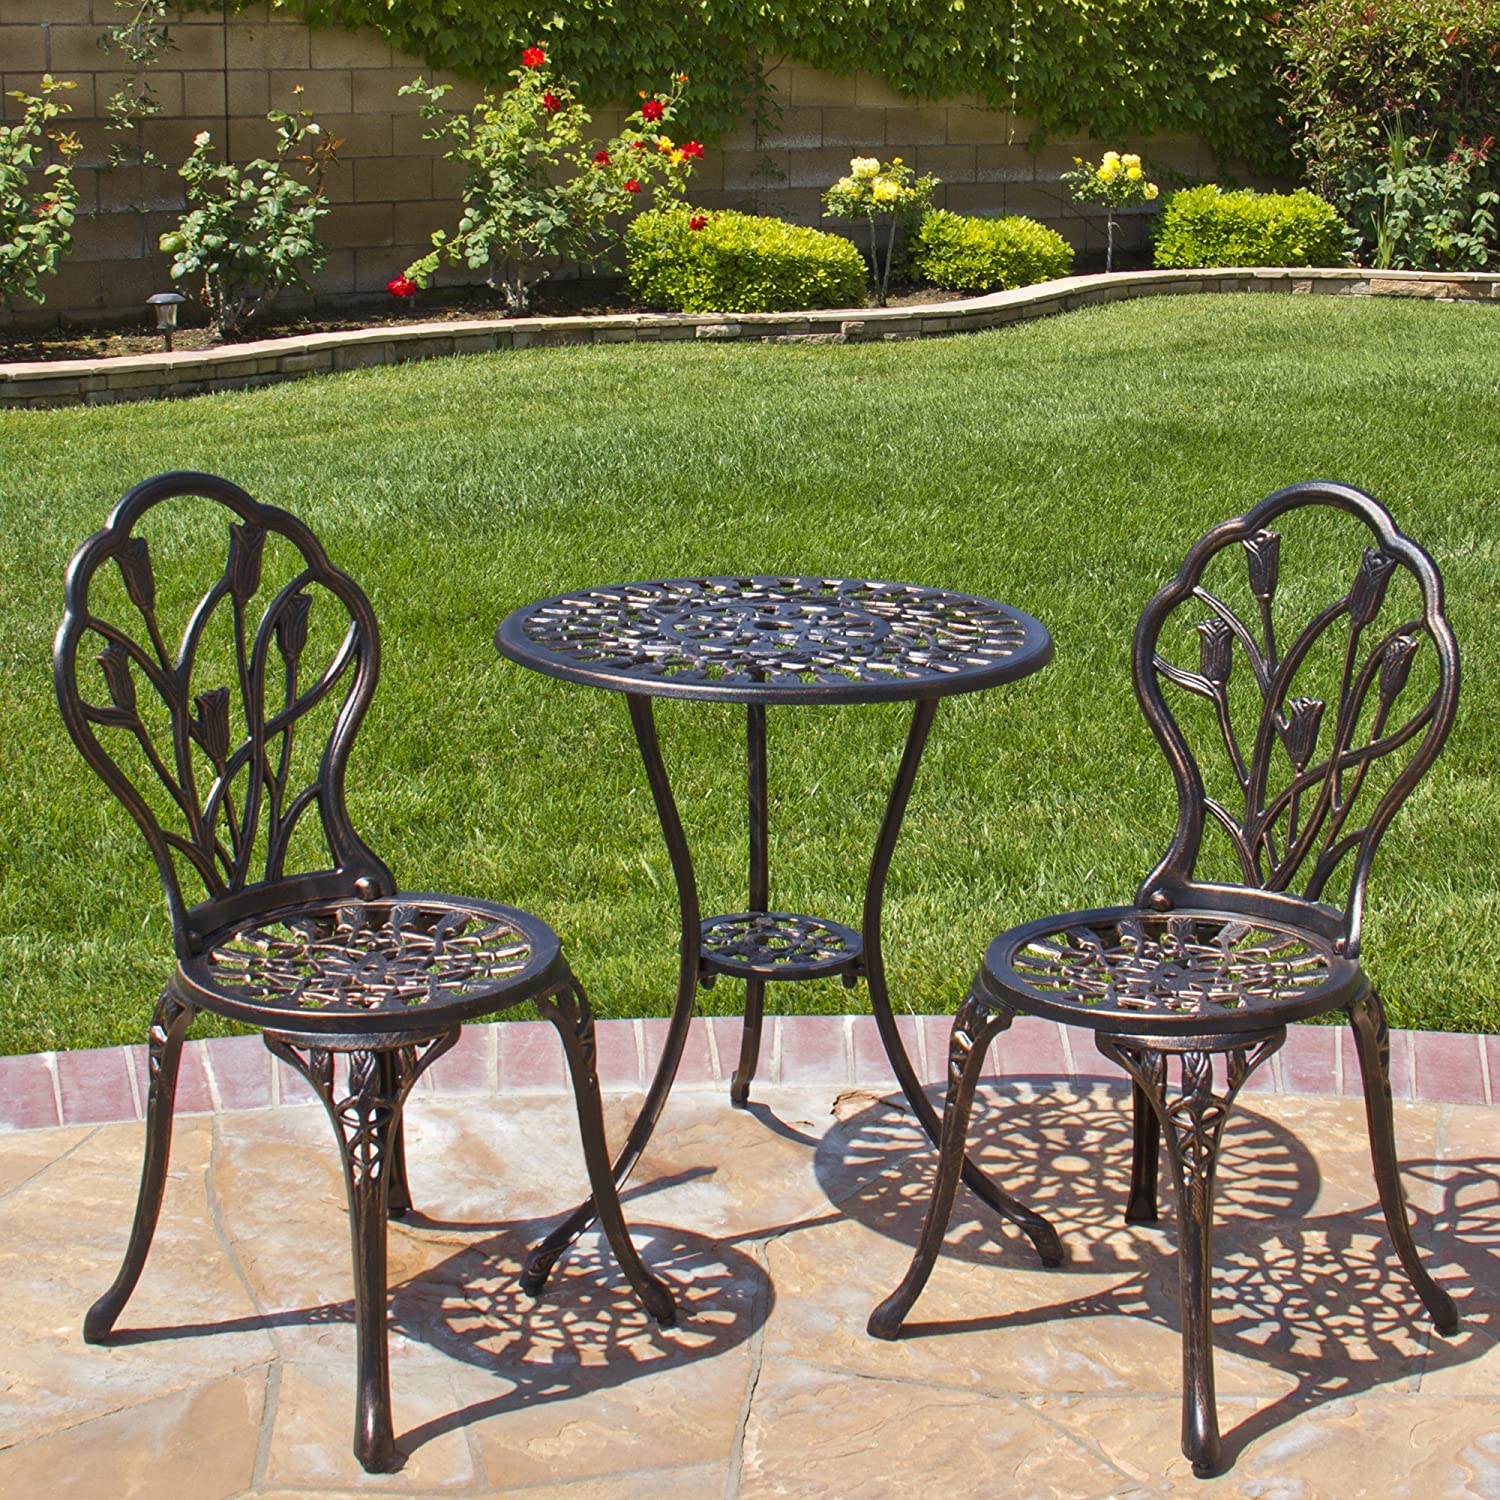 garden patio furniture. Amazon.com: Best Choice Products Outdoor Patio Furniture Tulip Design Cast Aluminum 3 Piece Bistro Set In Antique Copper: Garden \u0026 N